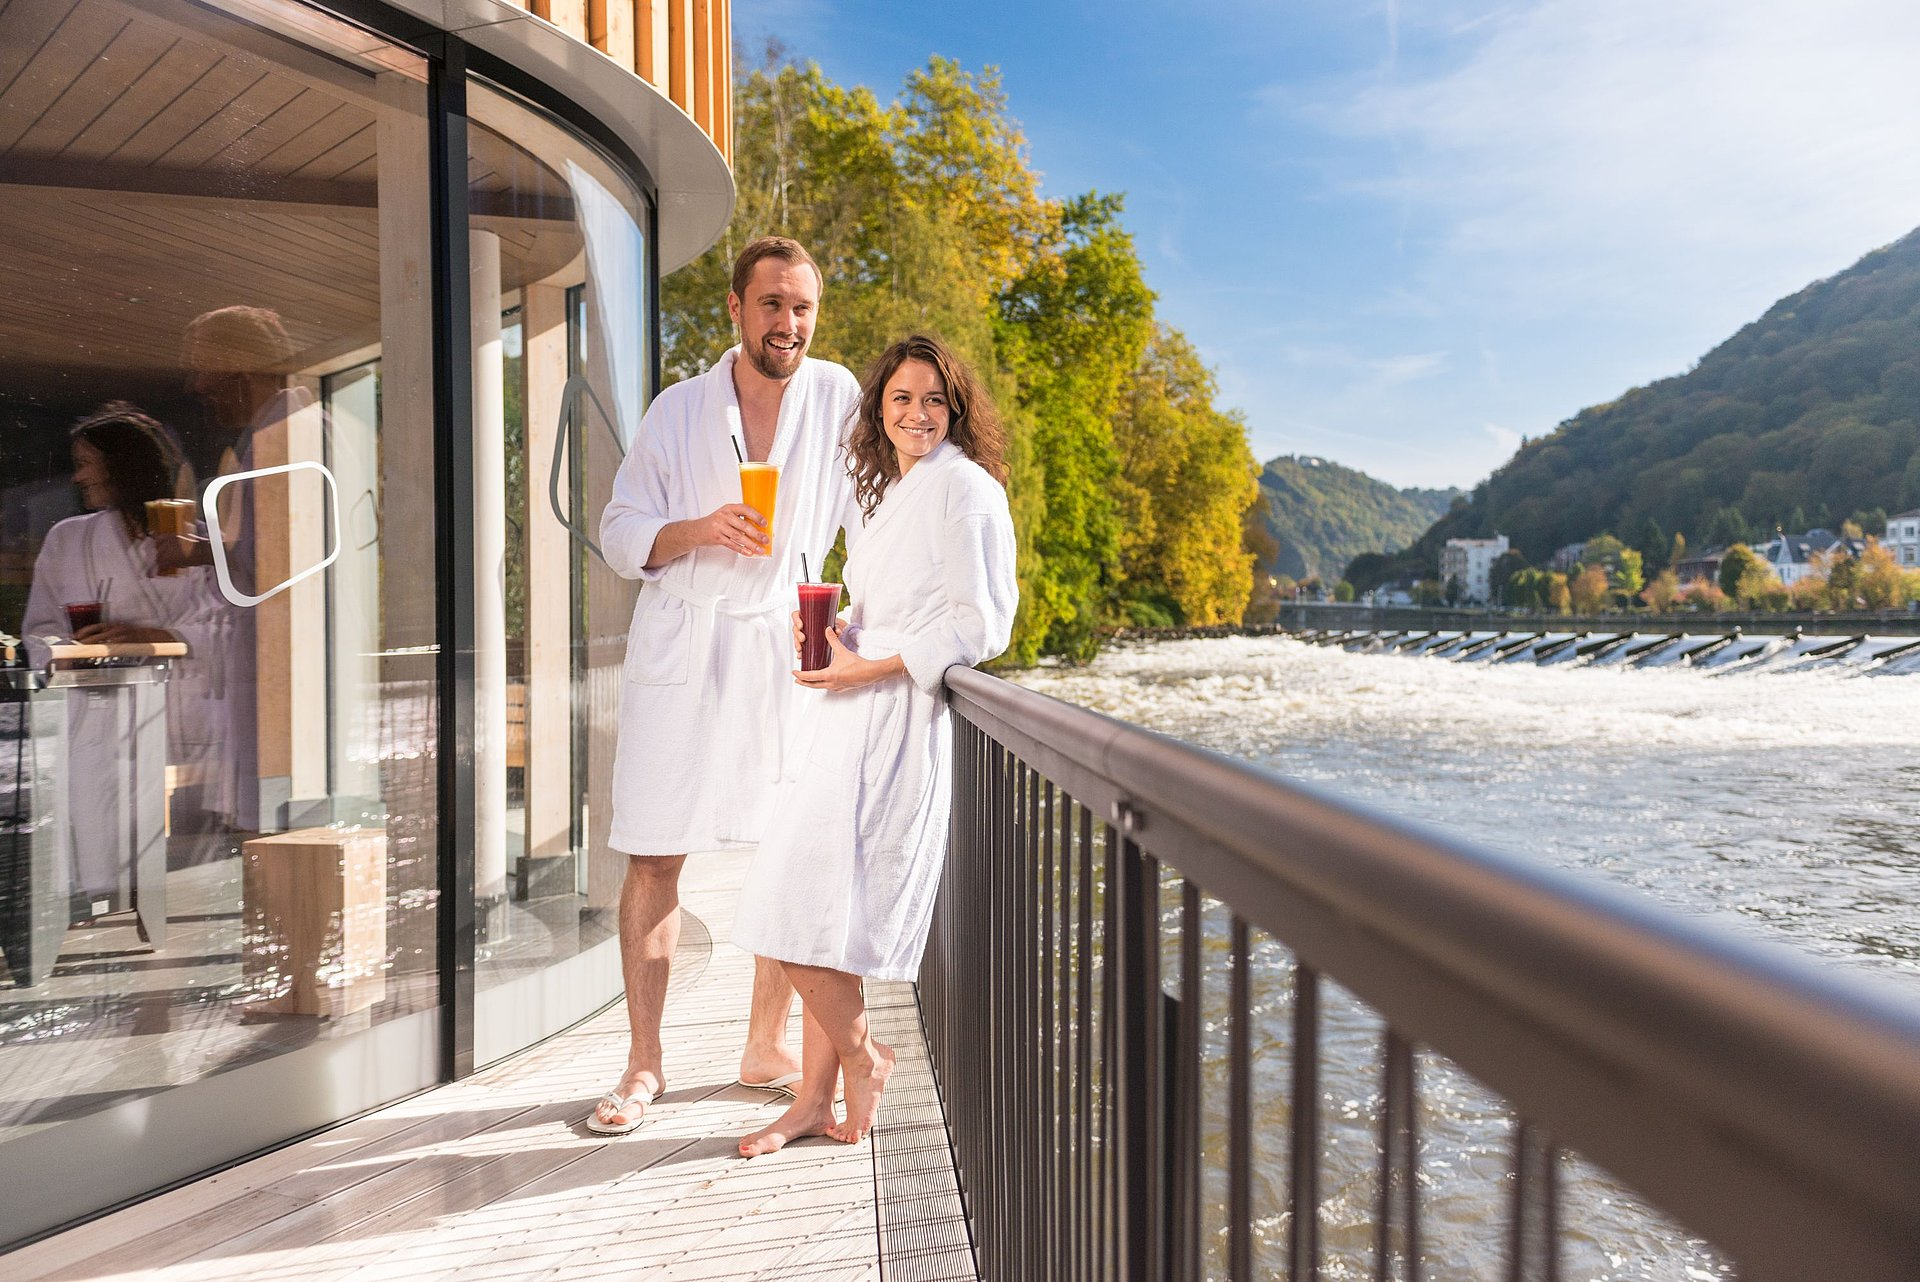 The river sauna of the Bad Ems spa, Lahn valley